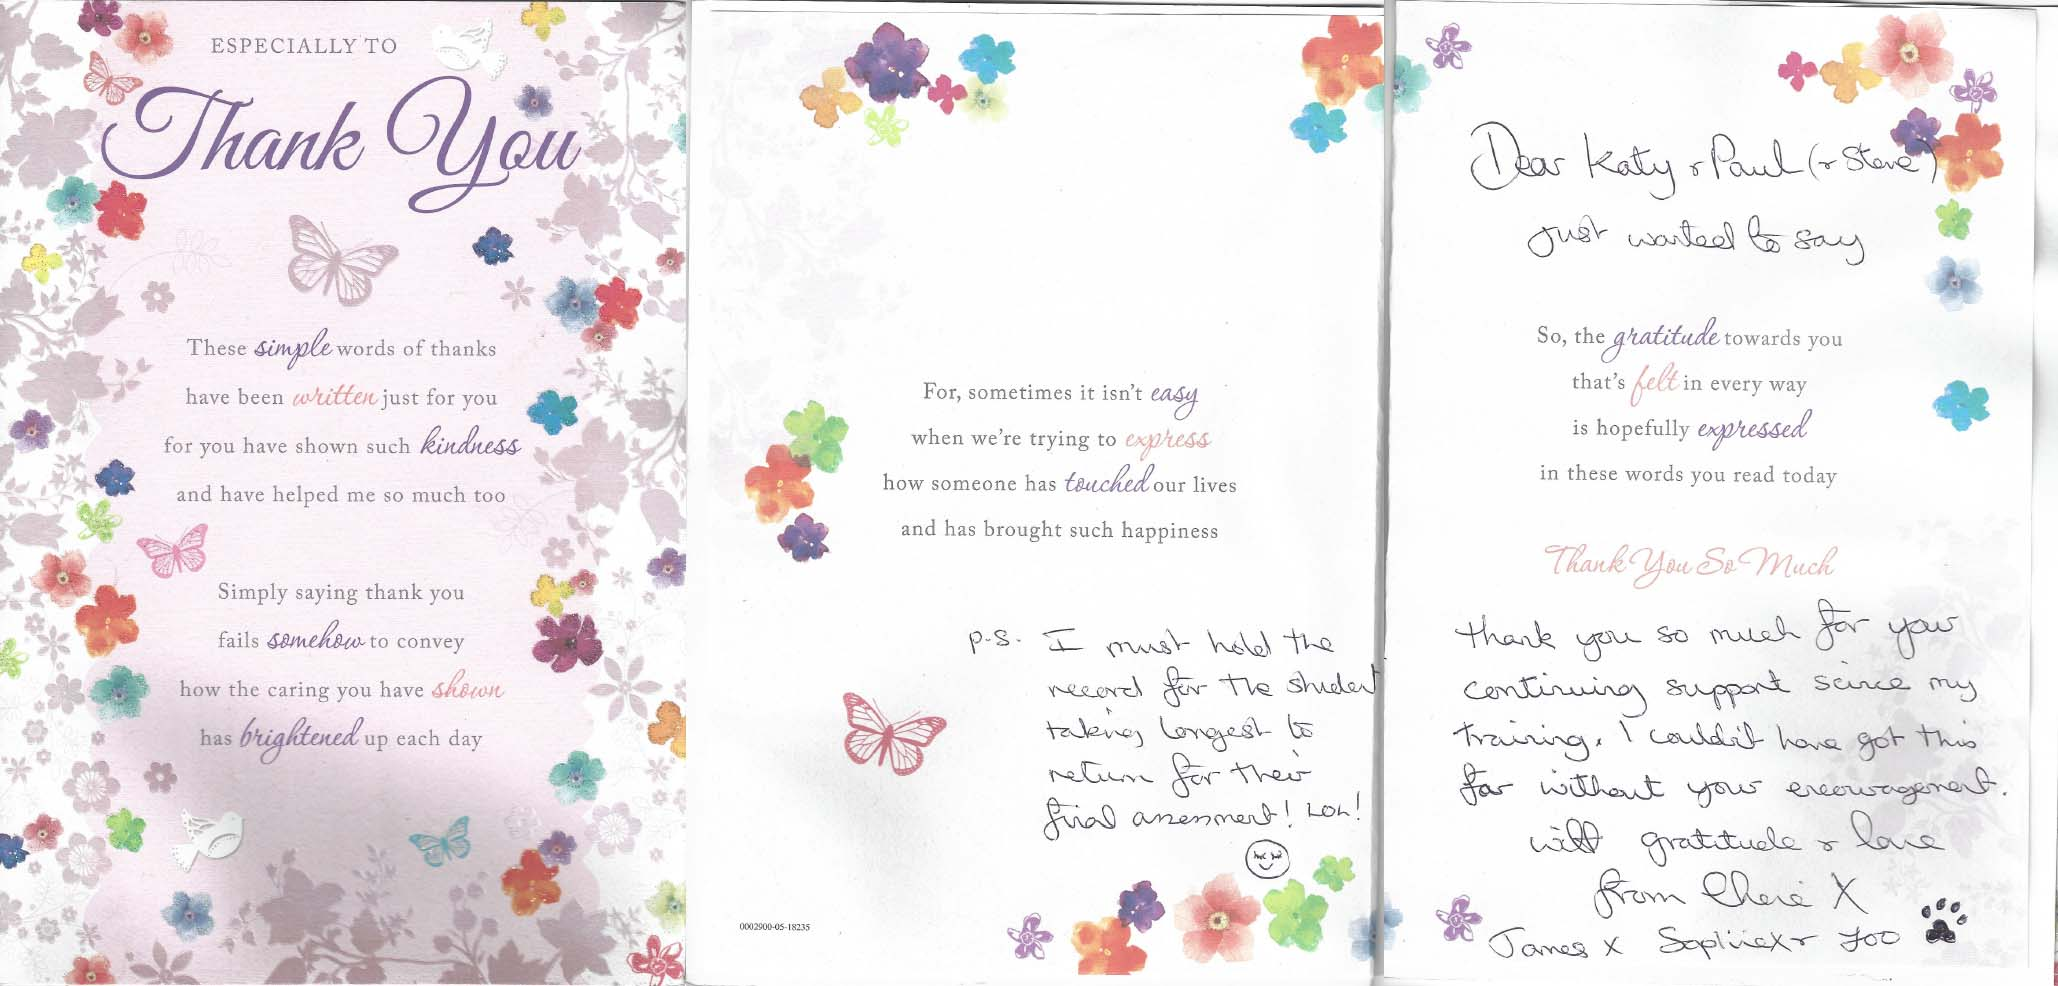 Permanent-Makeup-Training-Thank-you-cards-7